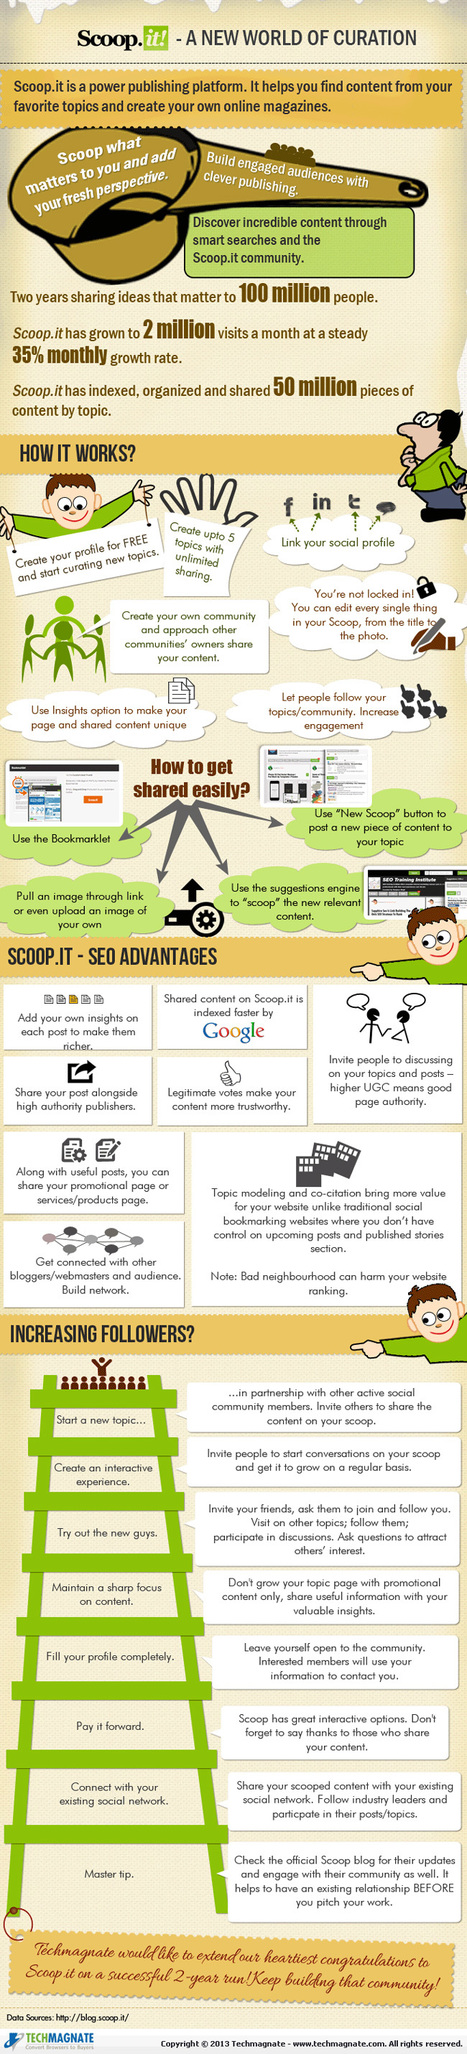 Scoop.It for SEO – A New World of Curation [Infographic] | Social Media in Teaching - and not only | Scoop.it